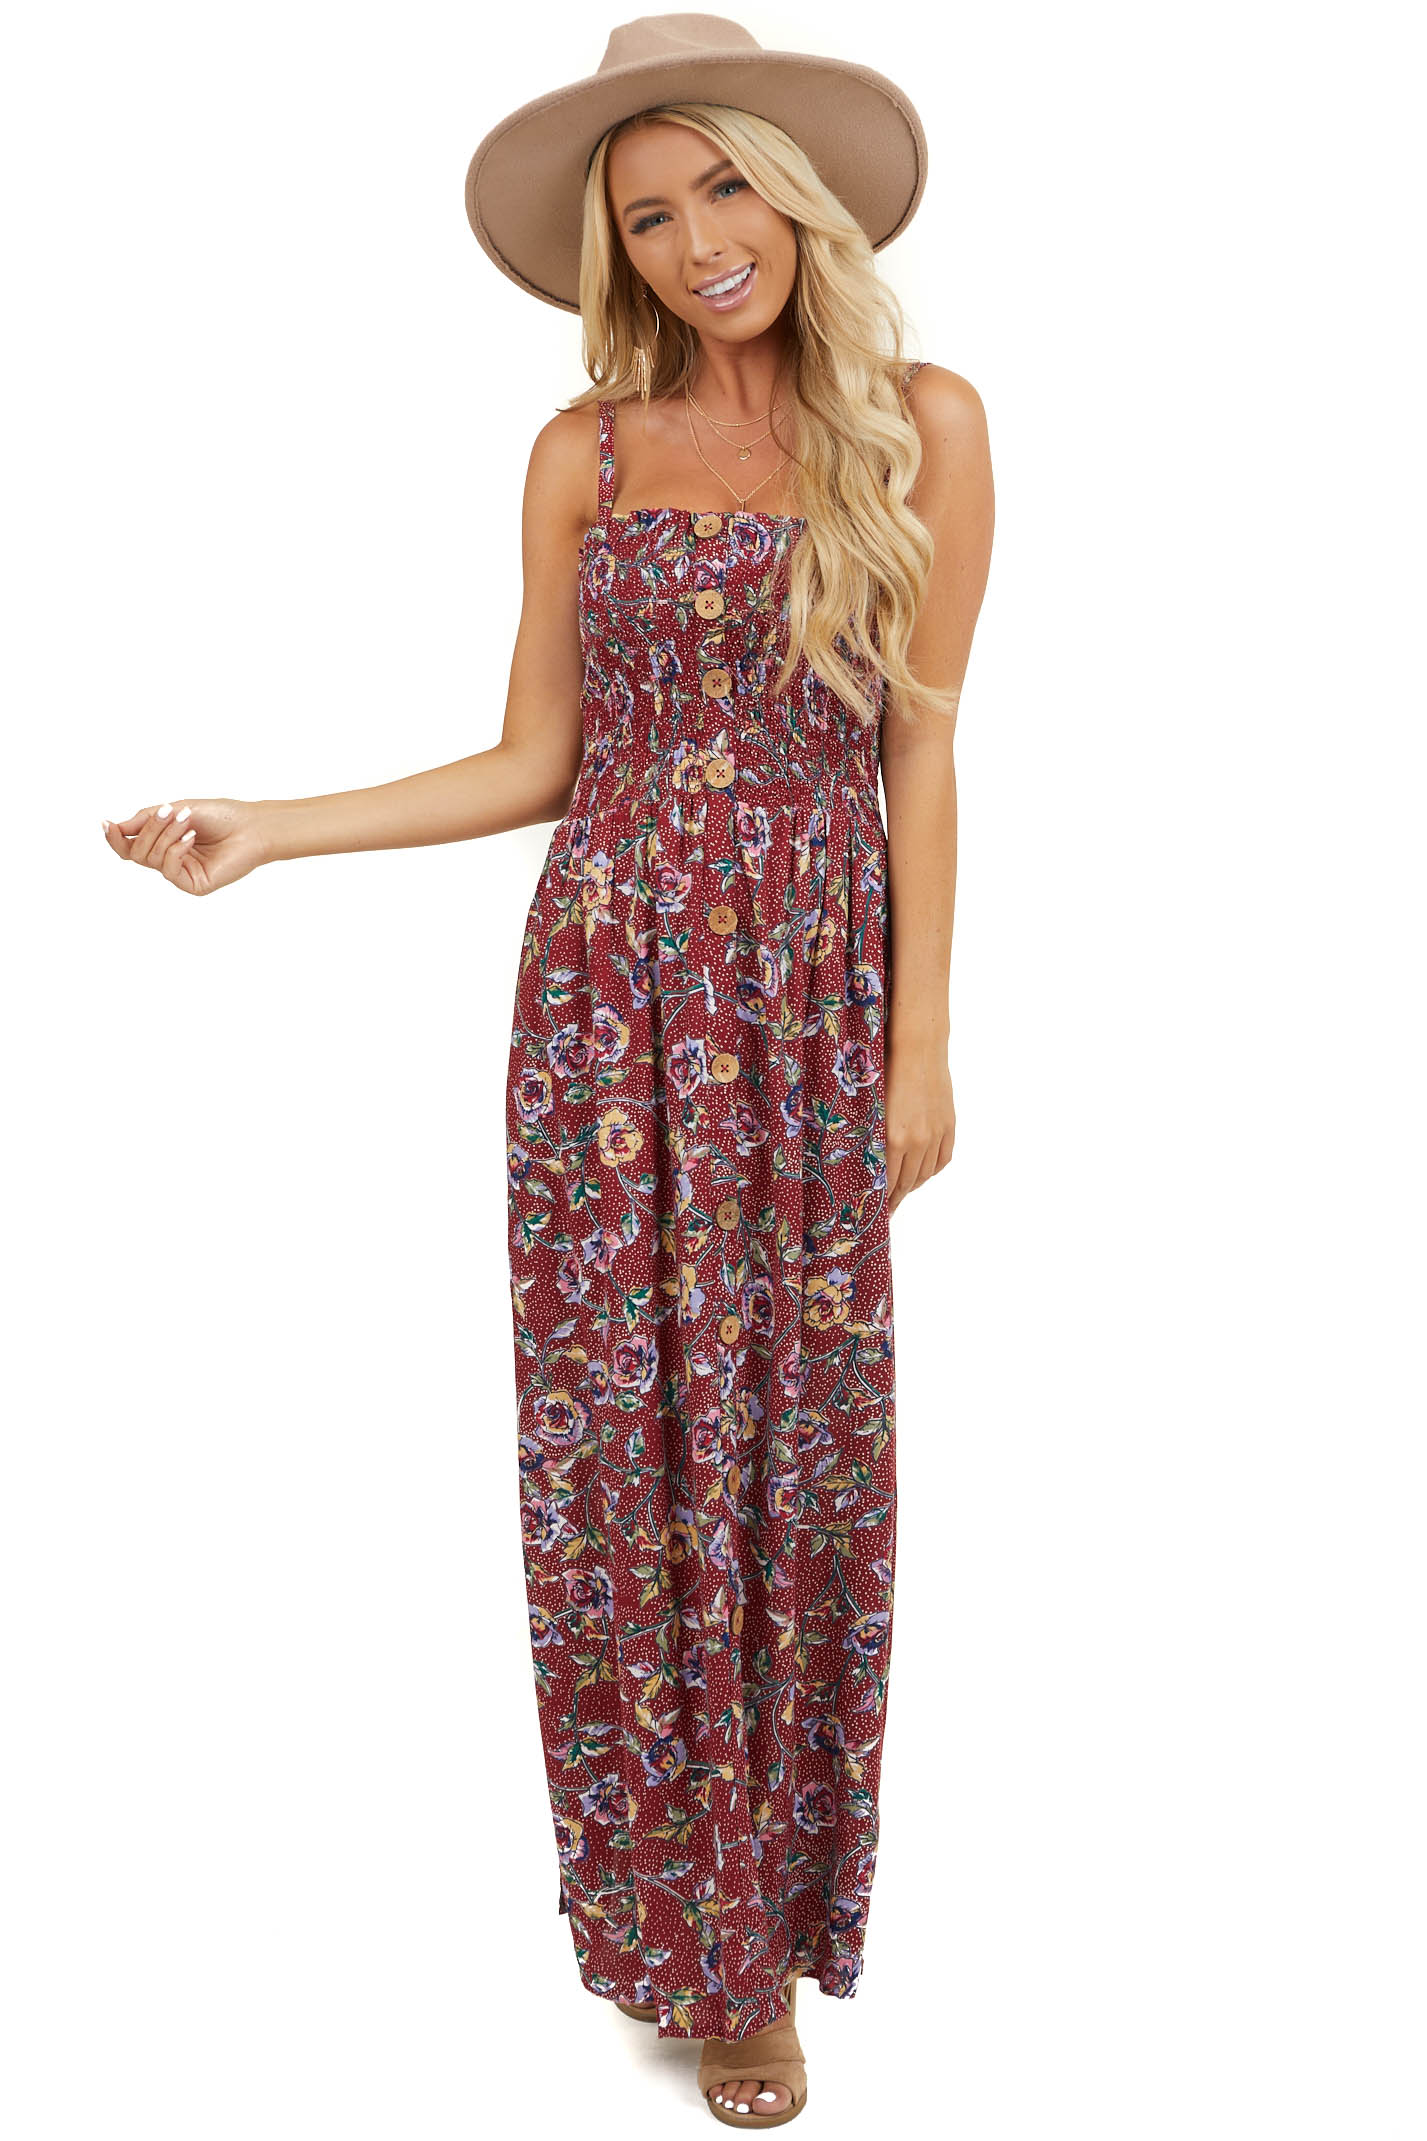 Burgundy Floral Sleeveless Maxi Dress with Smocked Bust